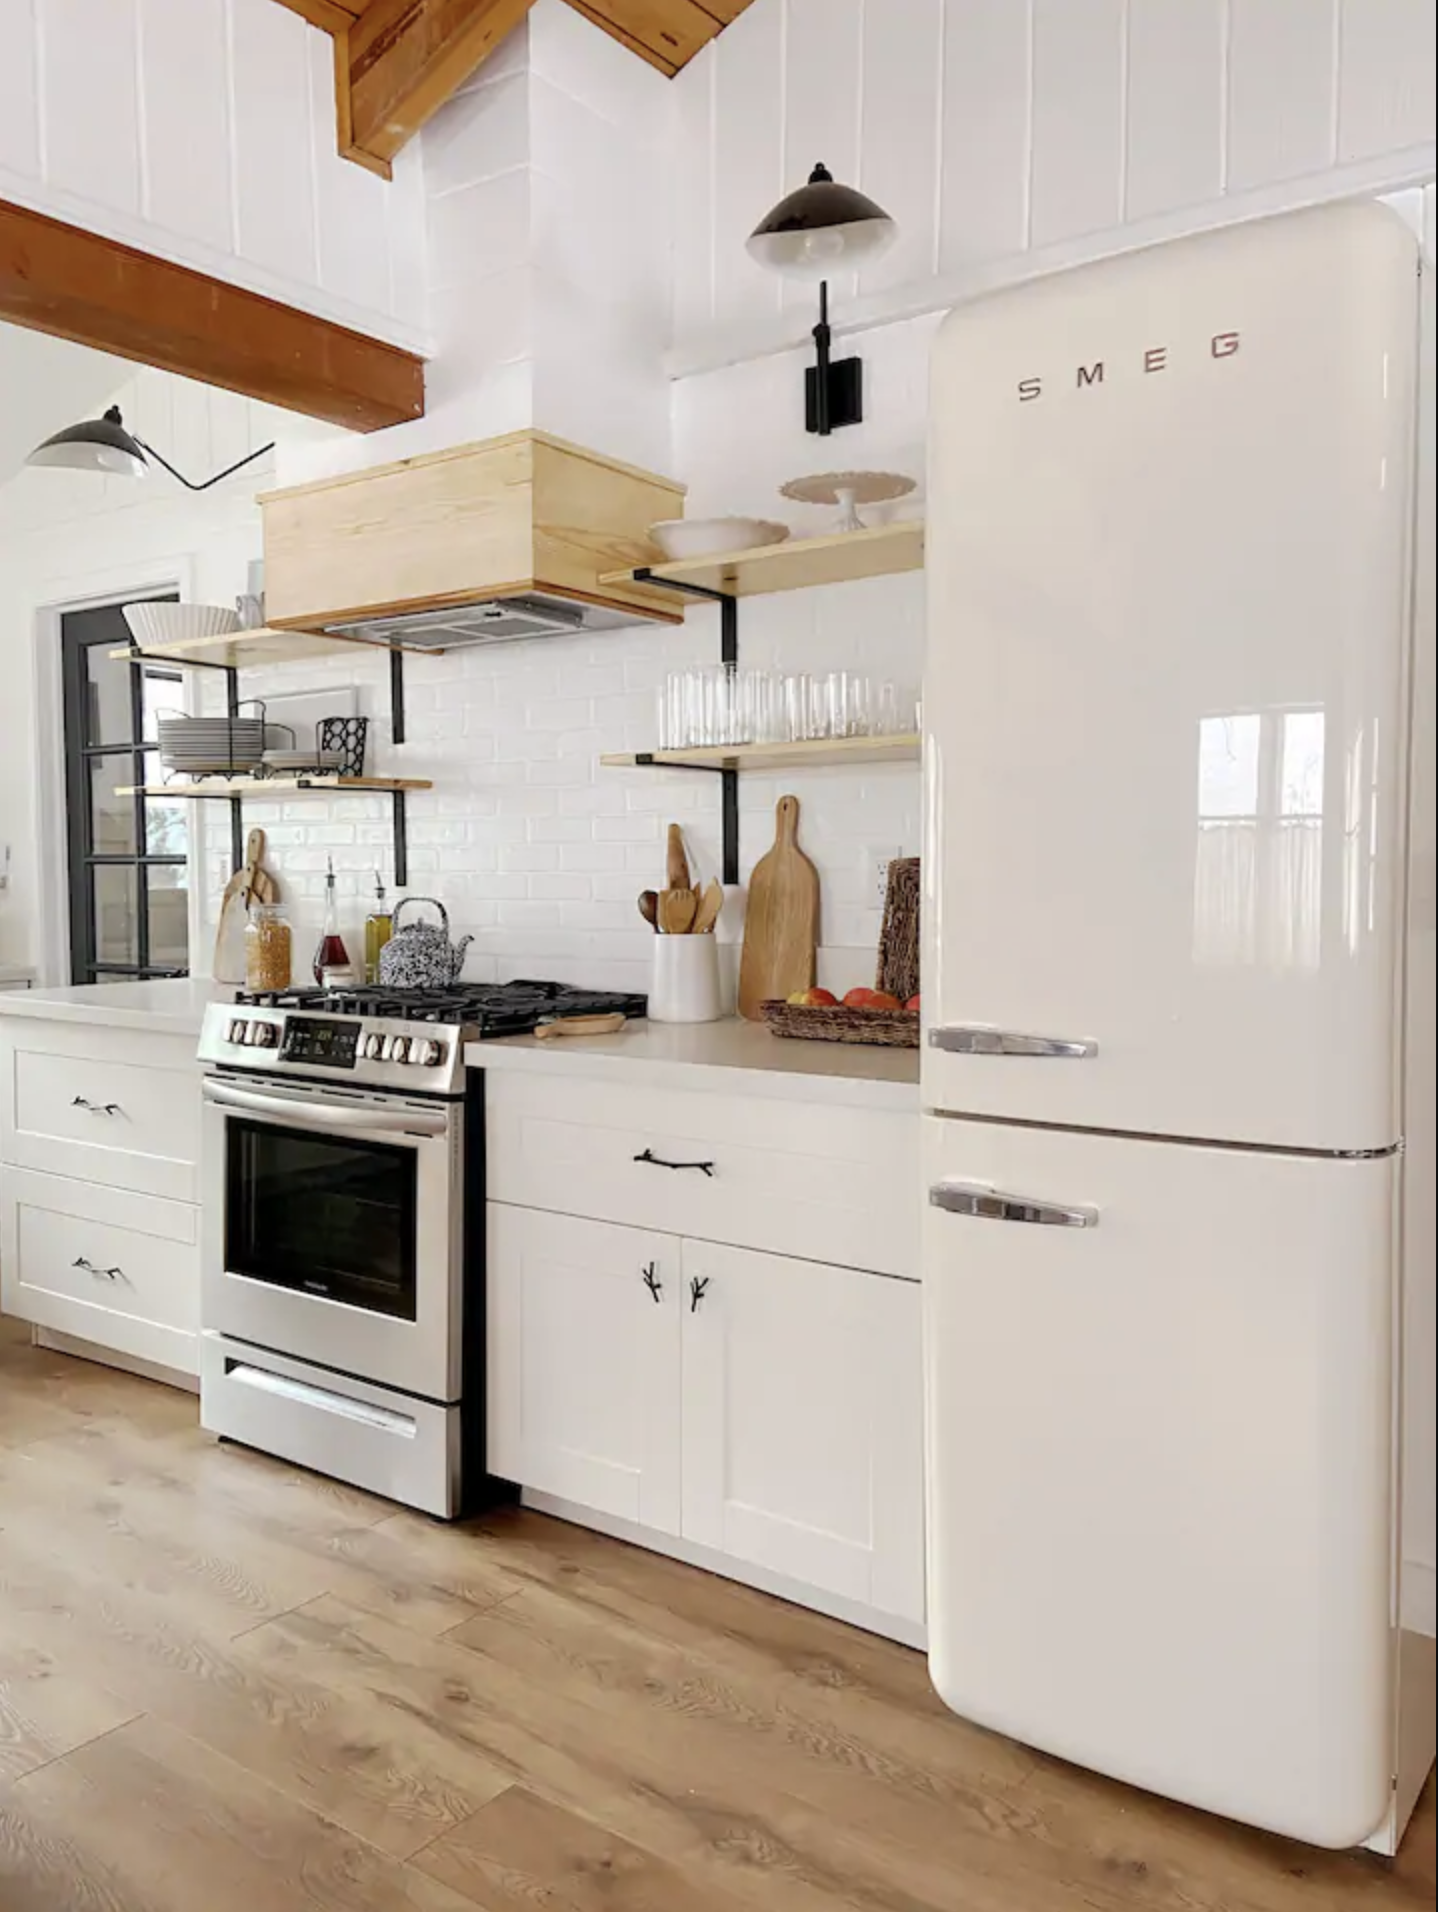 The Cottage On Catalina Kitchen Reveal Part 2 In 2020 Kitchen Design Small Small Cottage Kitchen Kitchen Design